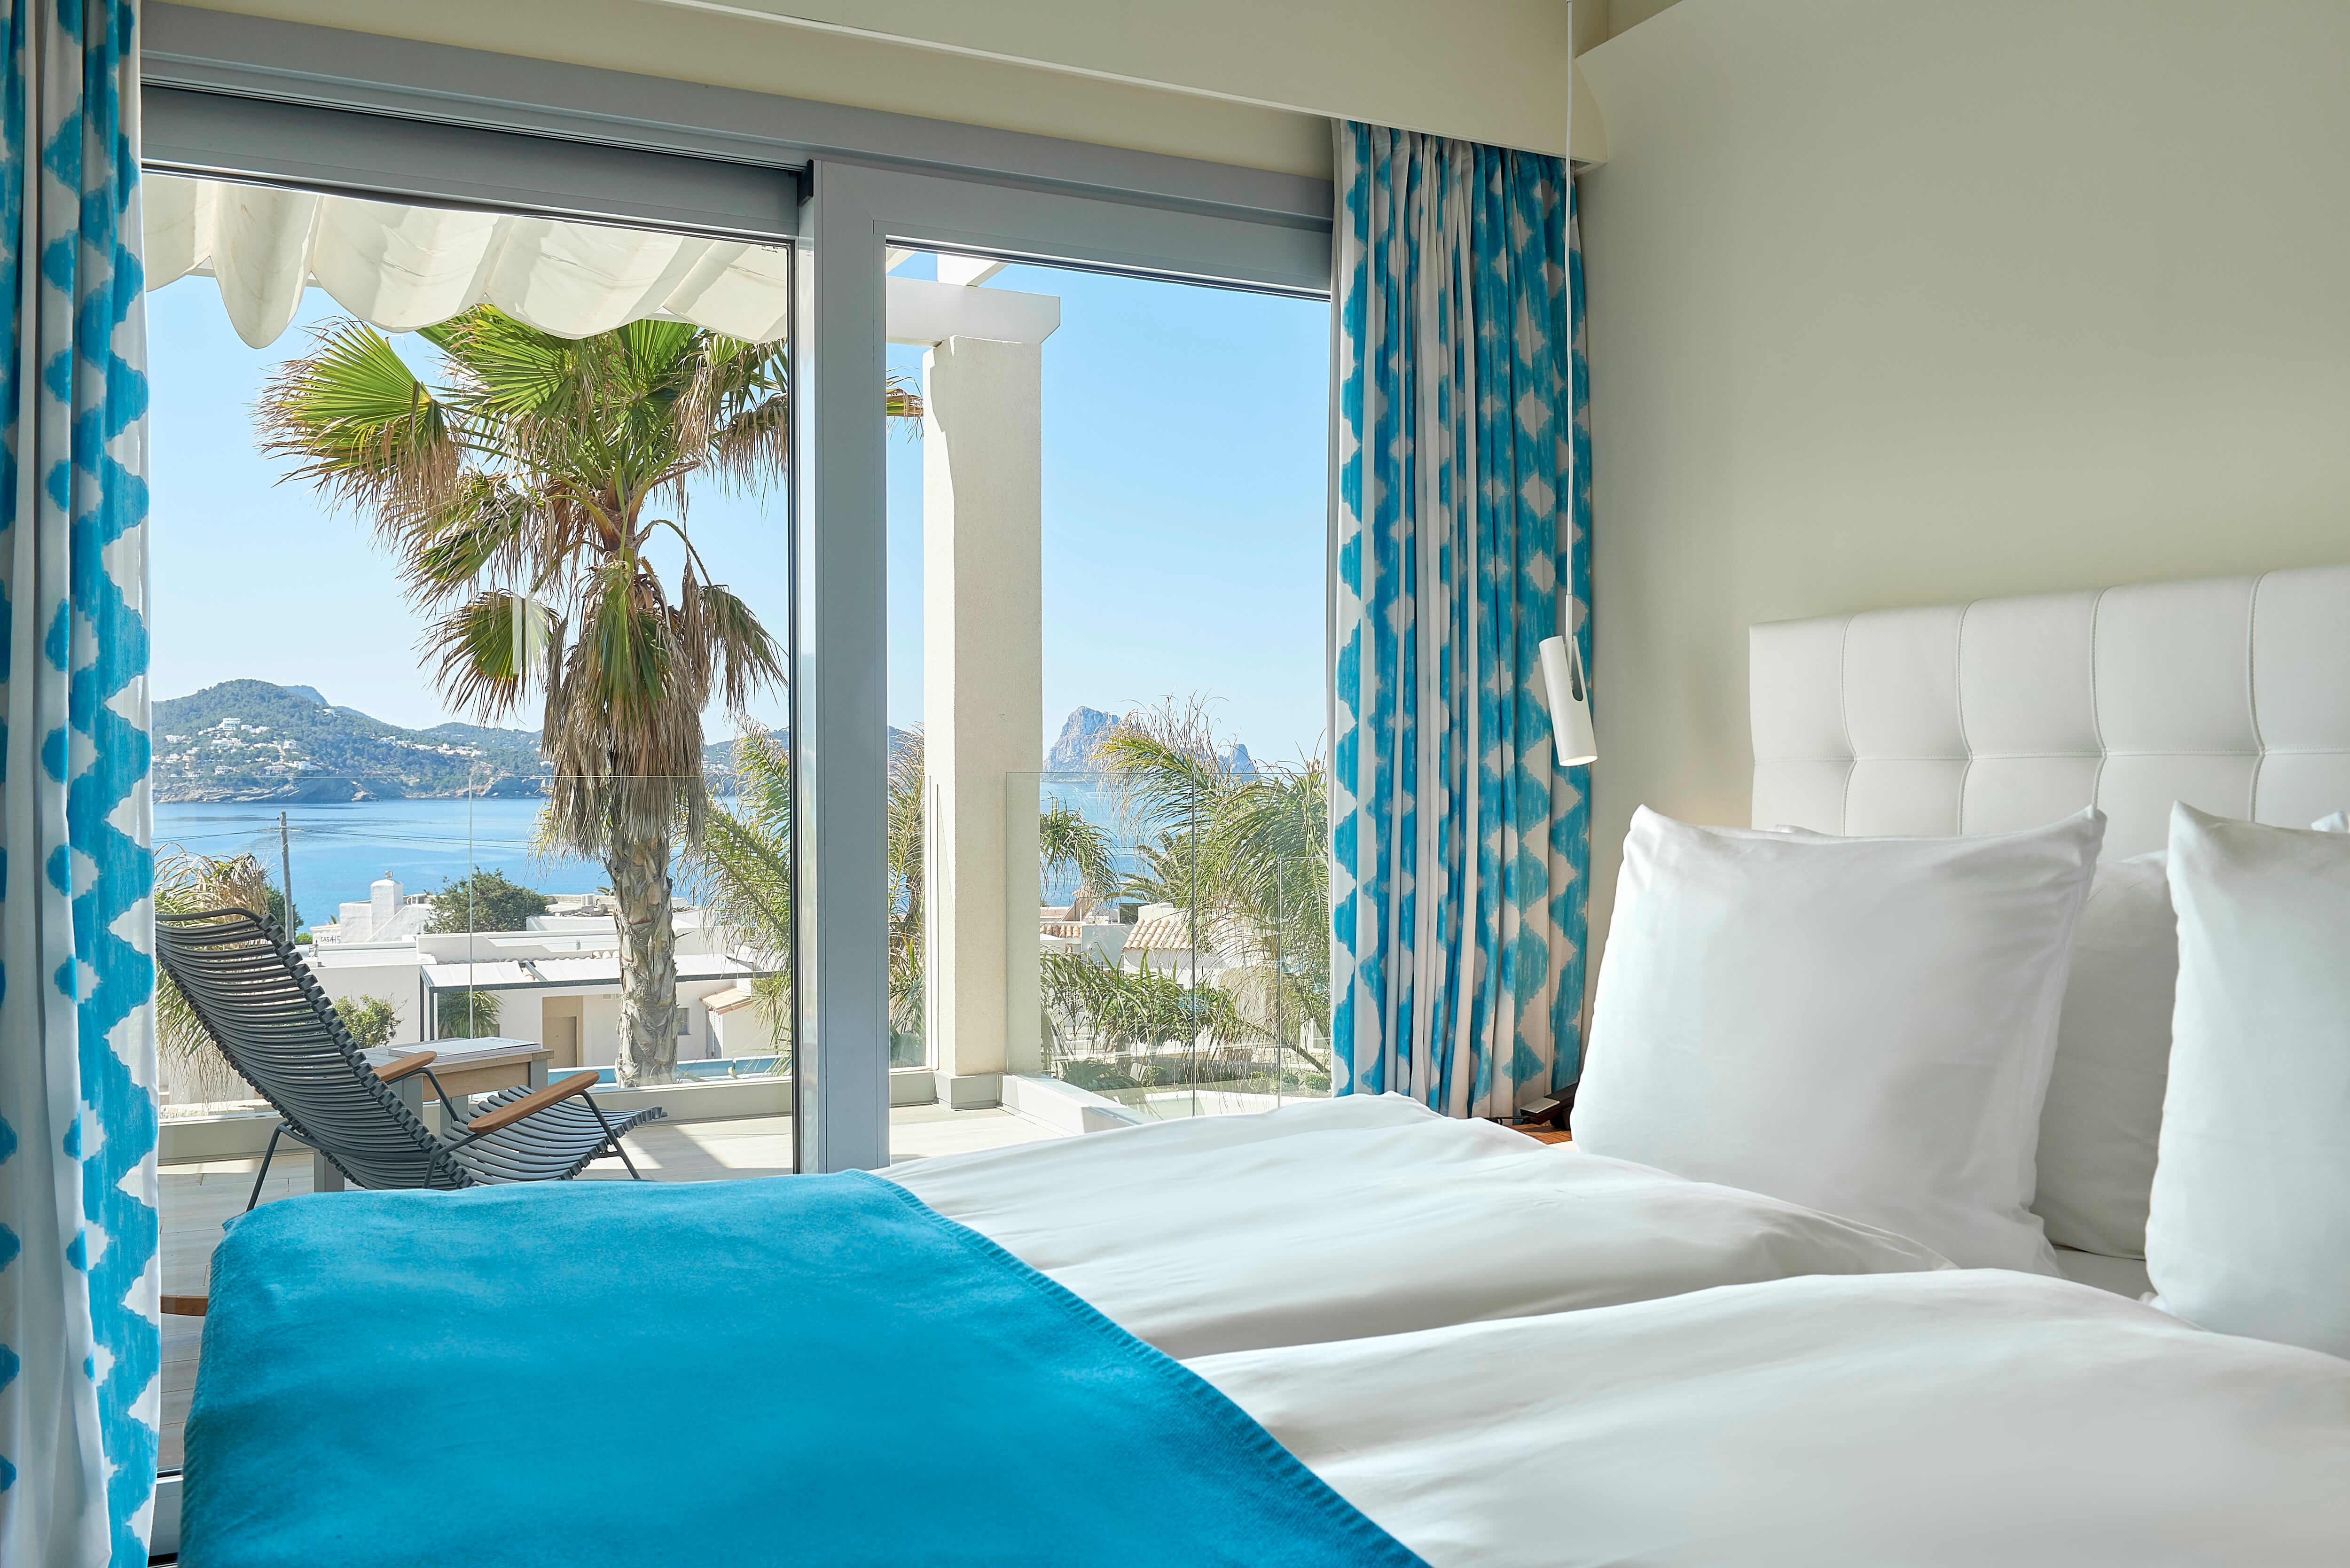 7KIBZ1_Laguna-Suite-Sea-View-2-Bedrooms_H_(1)